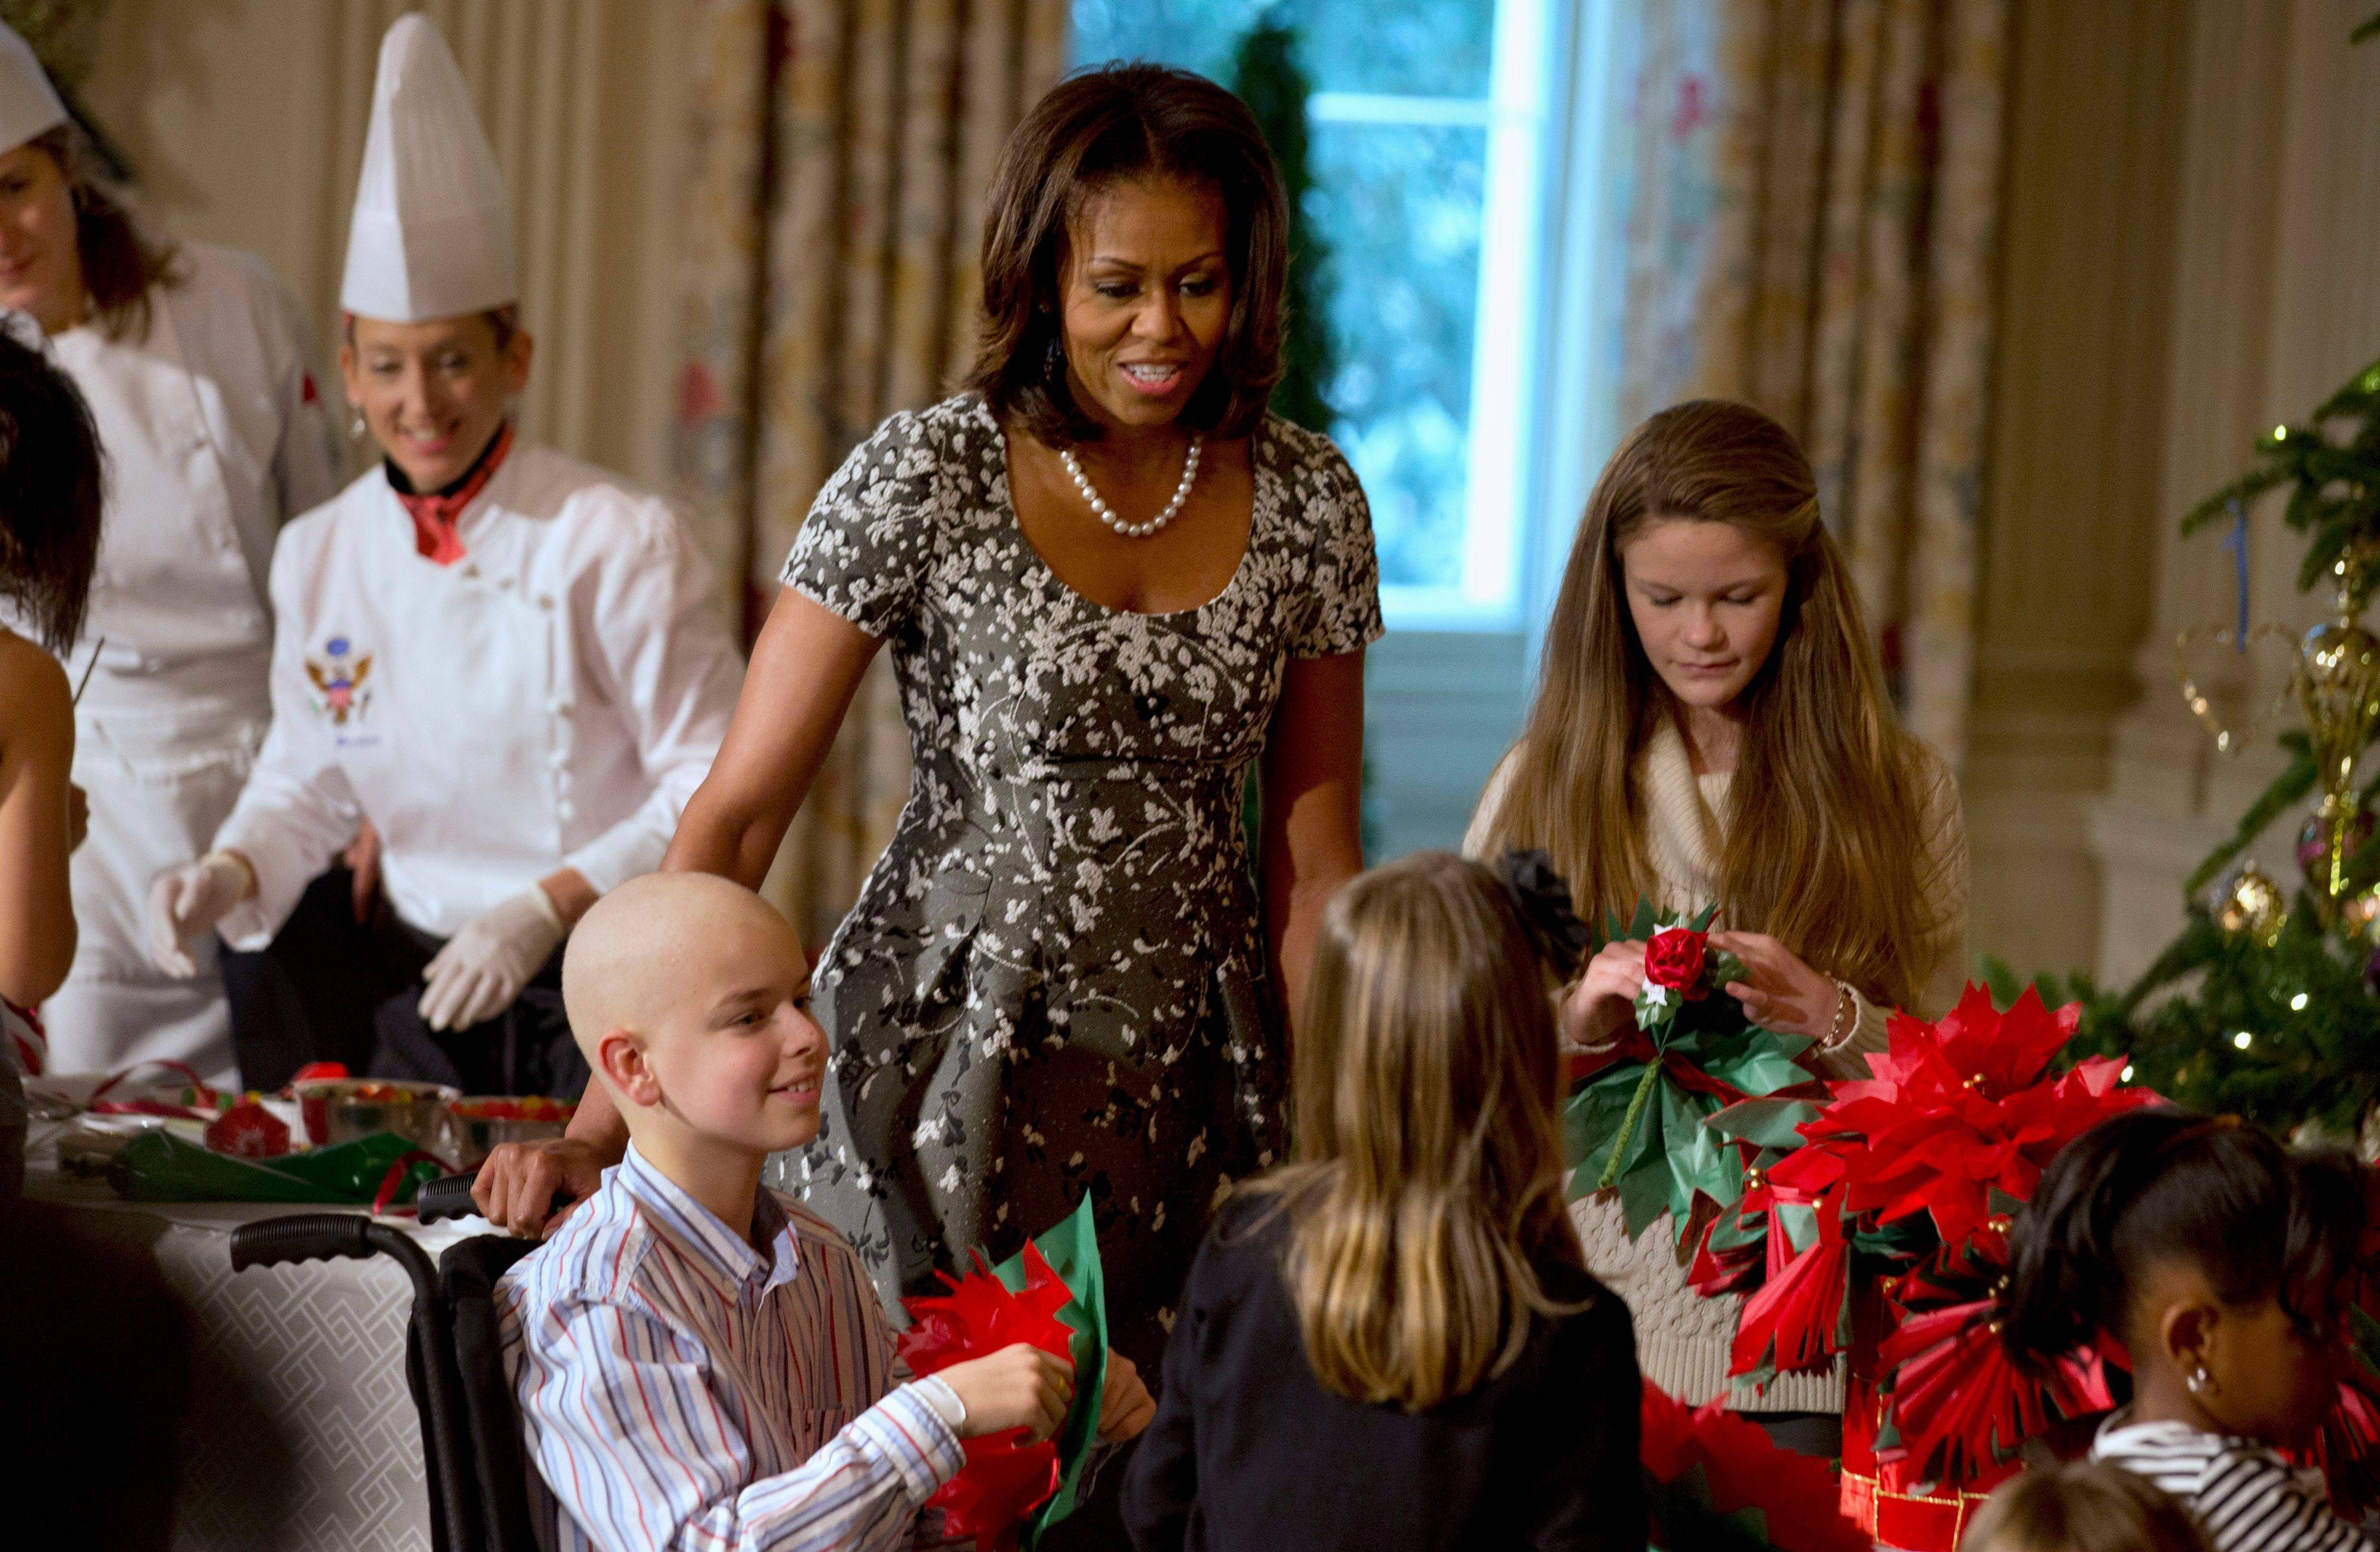 First lady Michelle Obama greets children during a holiday celebration showing the holiday decorations at the White House on Wednesday. $PHOTOCREDIT_ON$ASSOCIATED PRESS $PHOTOCREDIT_OFF$